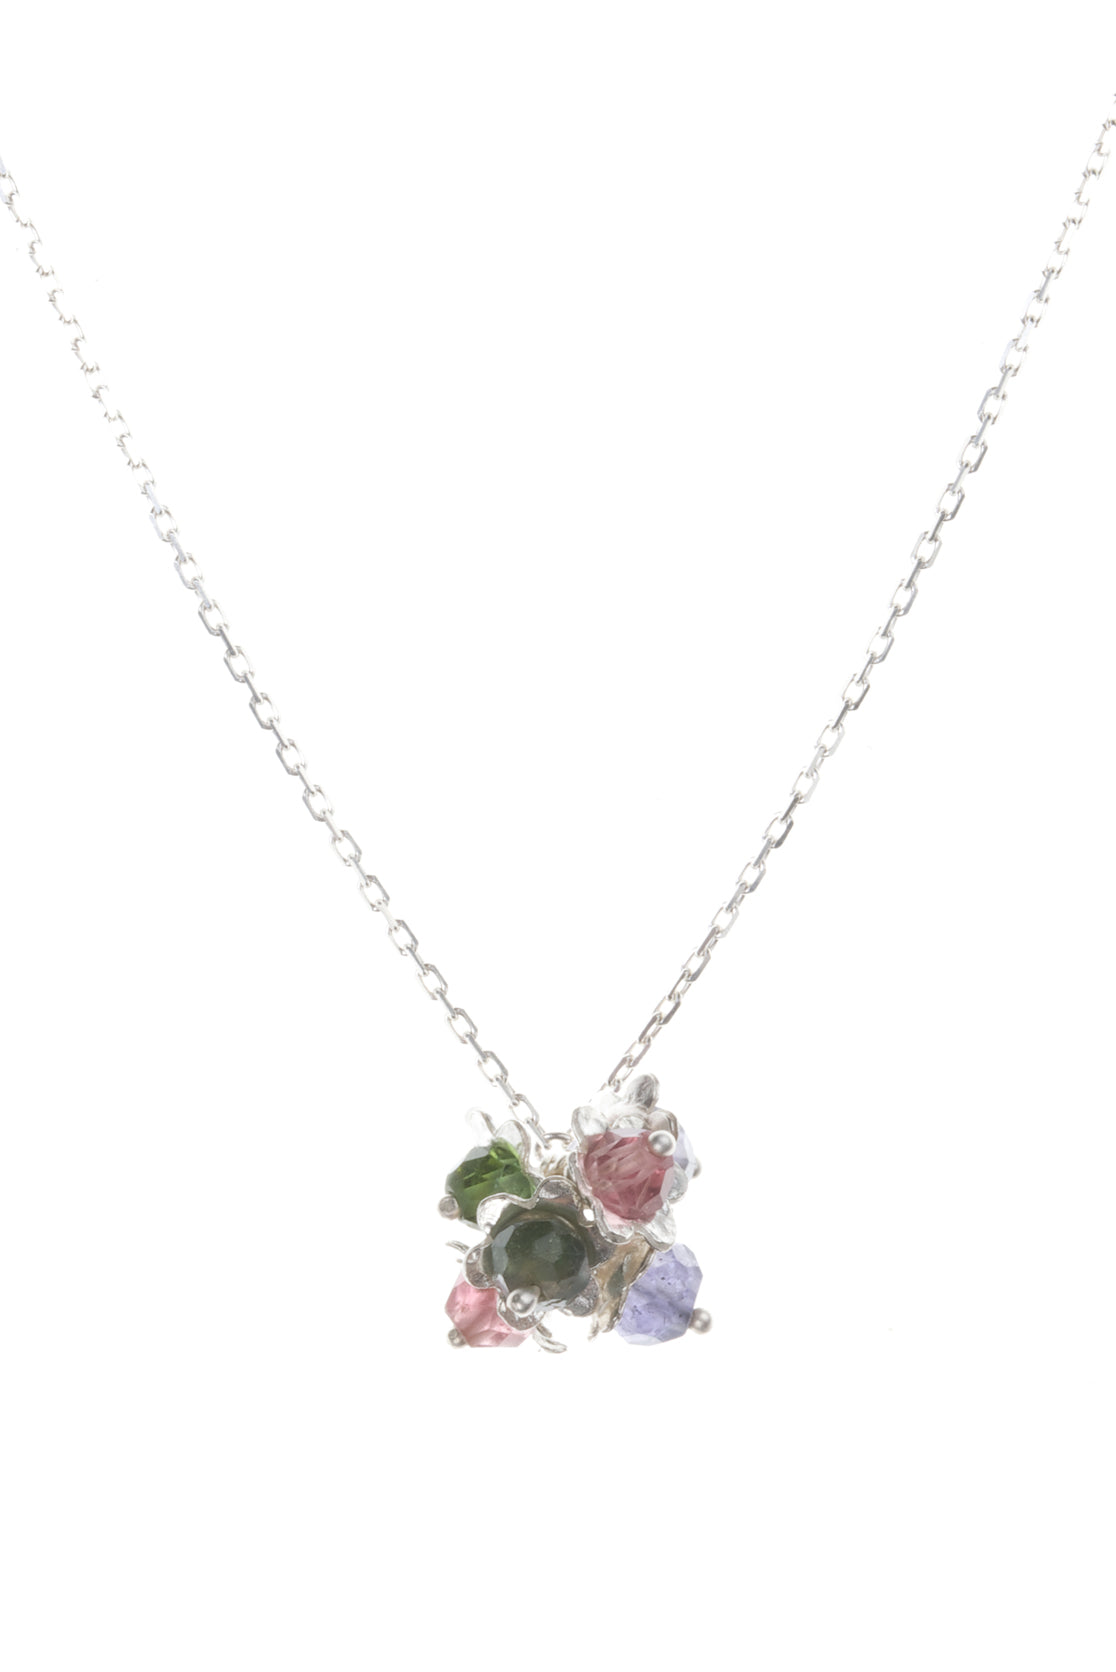 Forget-me-not cluster flower pendant